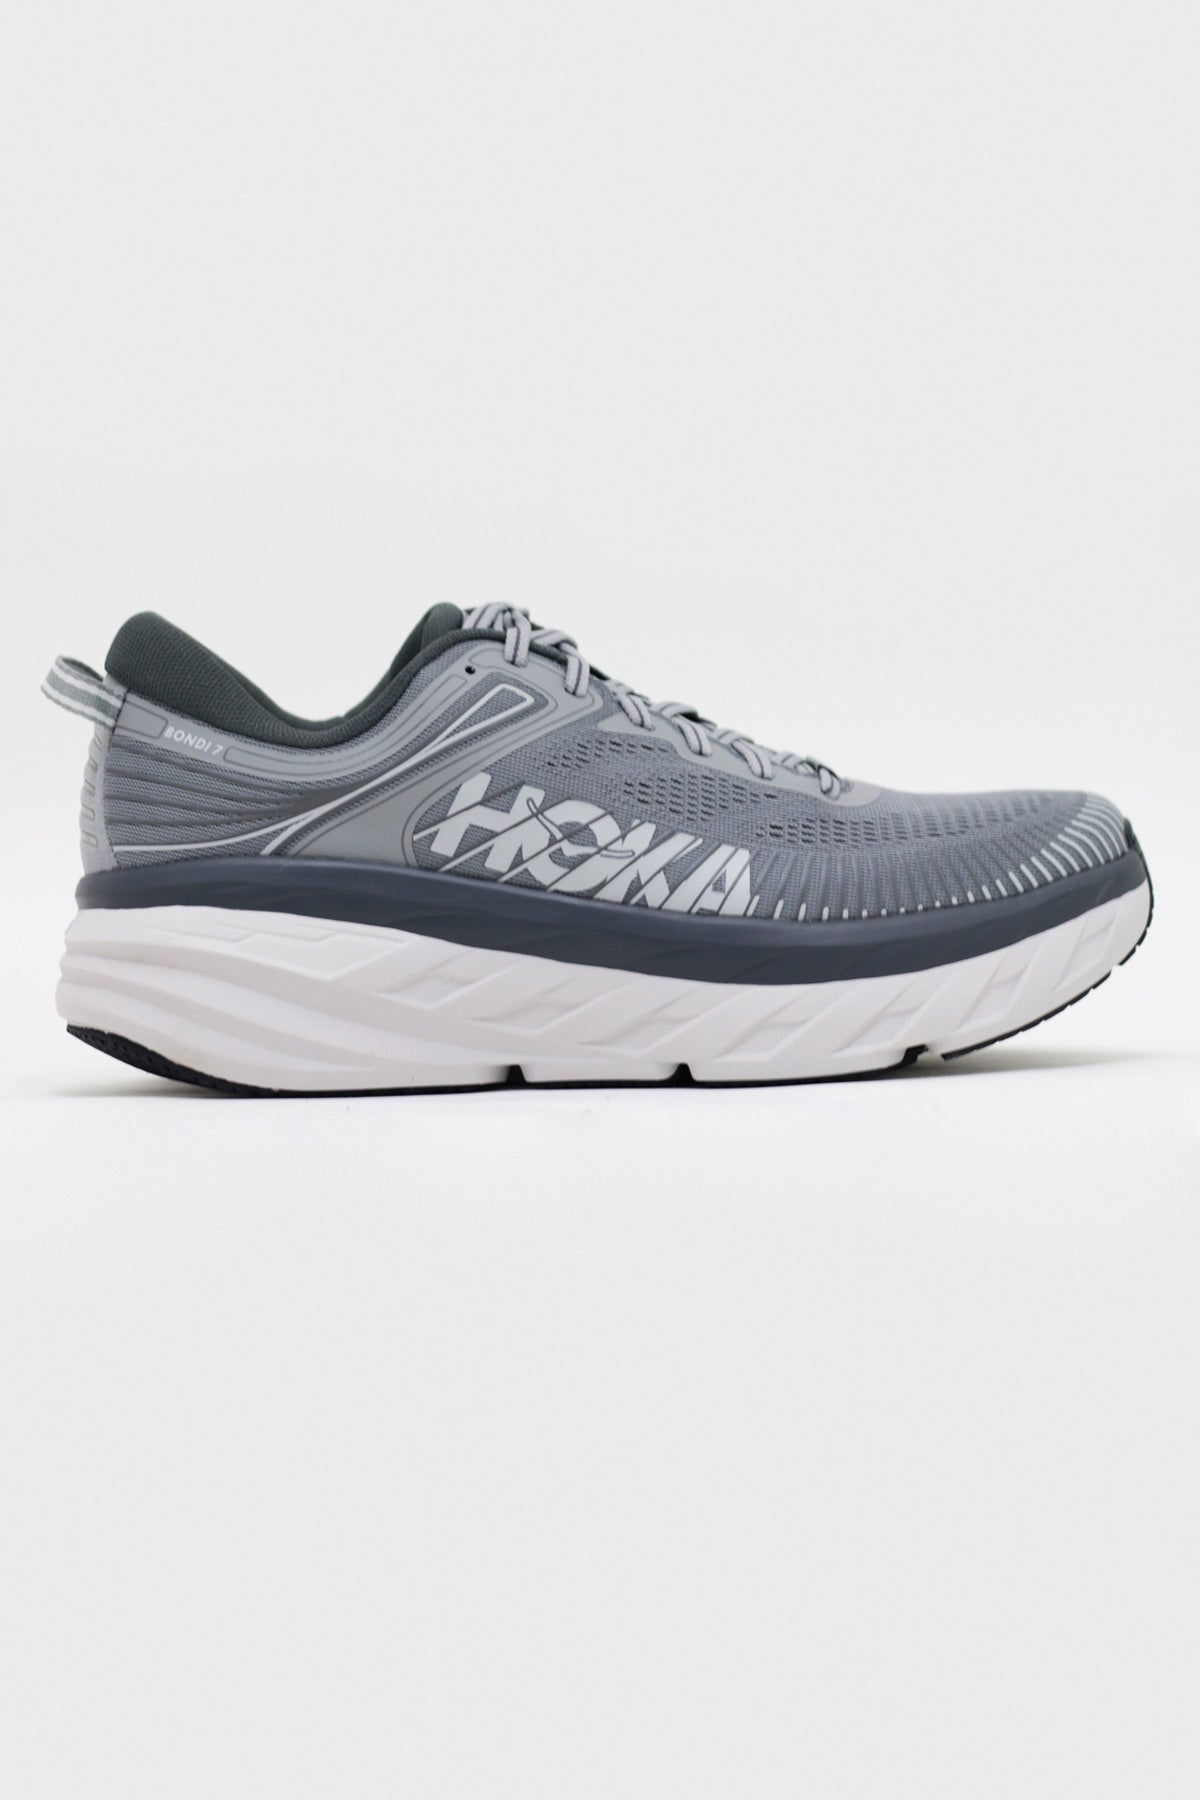 HOKA ONE ONE - Bondi 7 - Wild Dove/Dark Shadow - Canoe Club